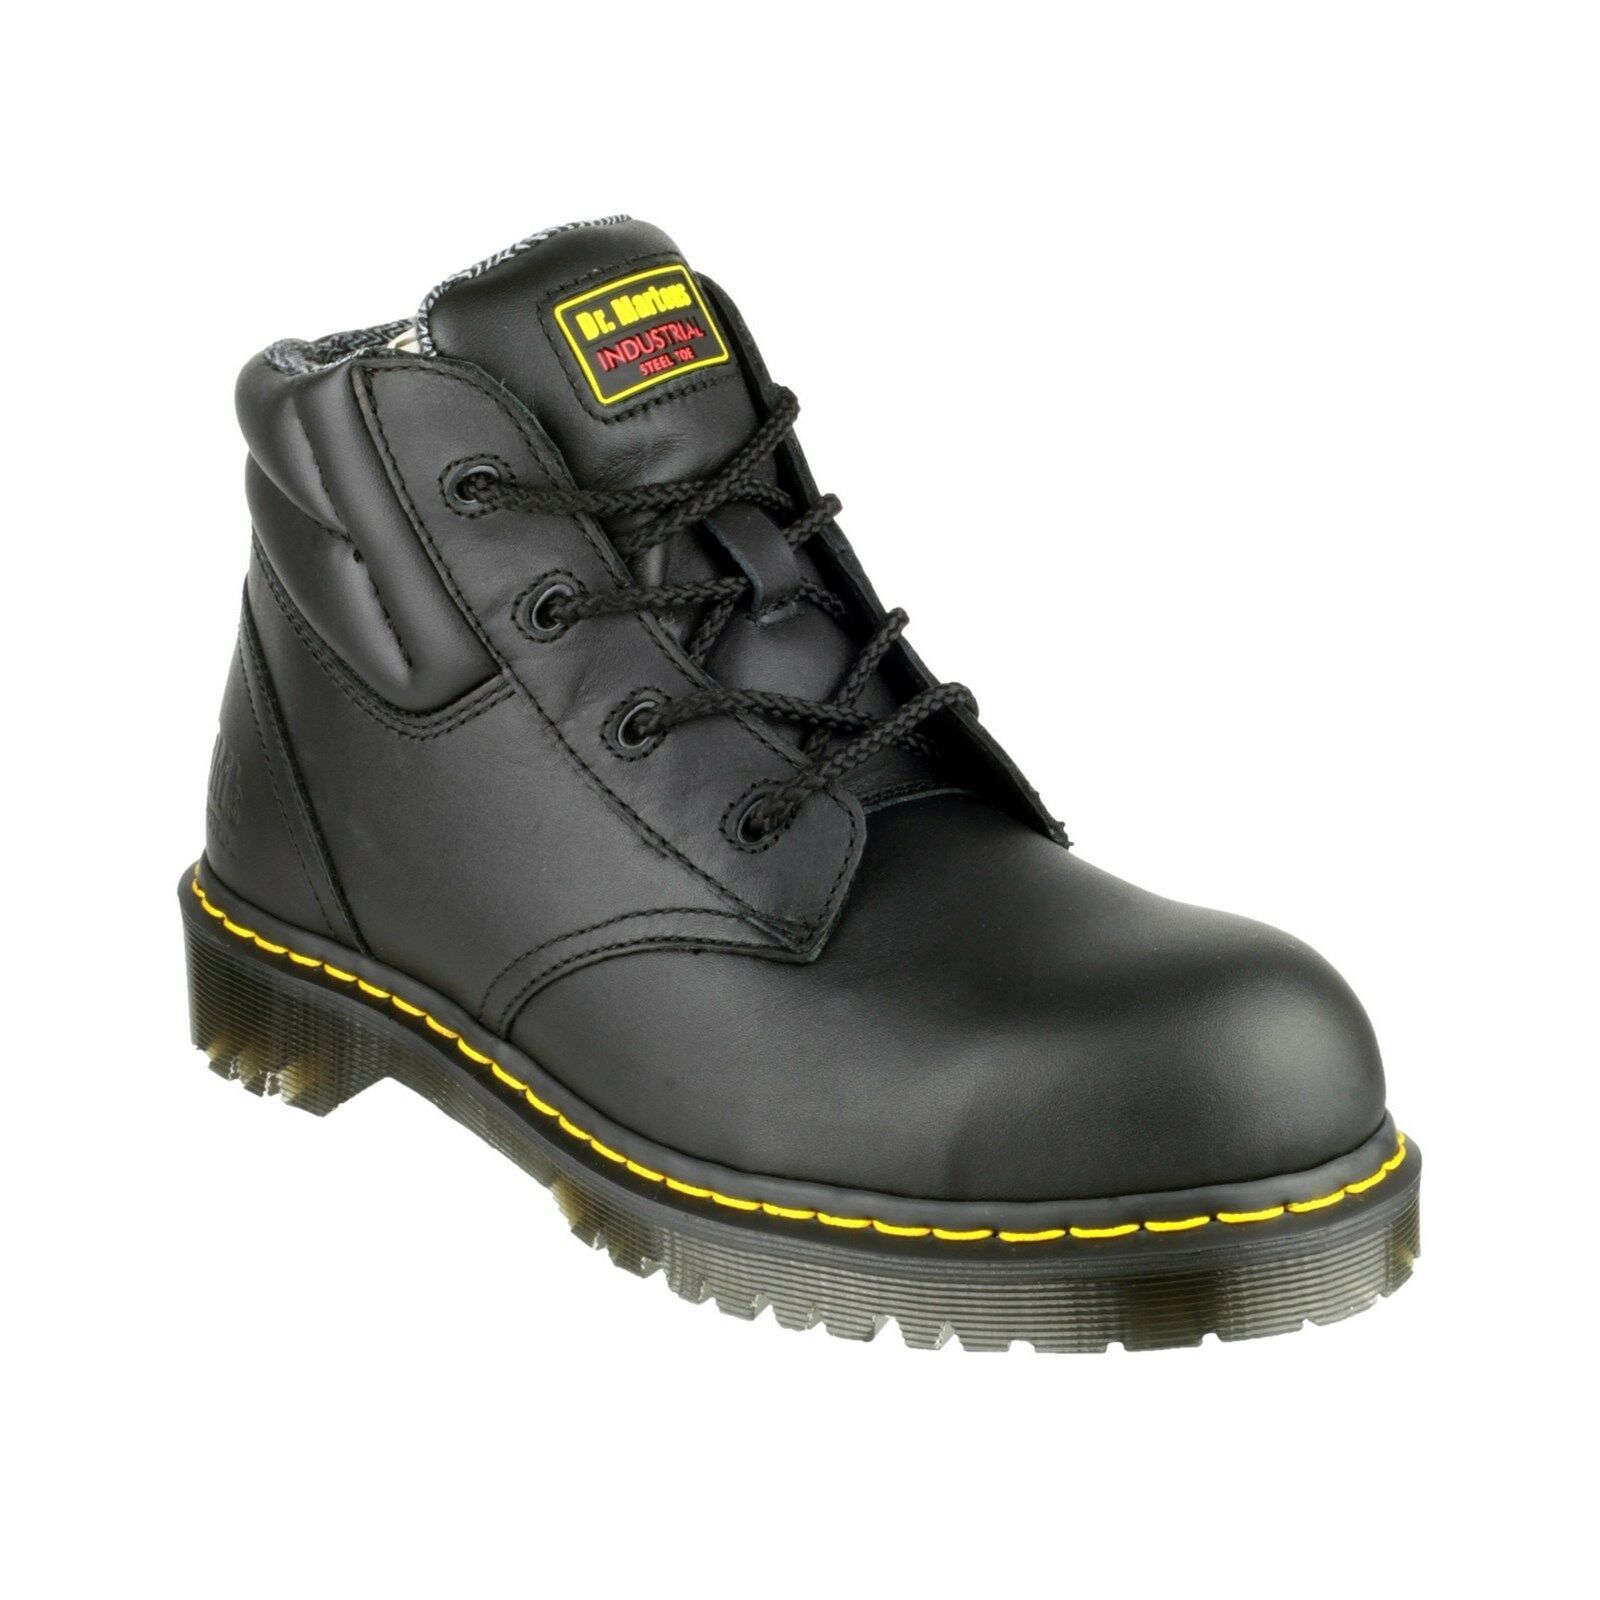 Dr Martens FS20Z Safety Stiefel Mens Industrial Leather Steel Toe Cap Work schuhe